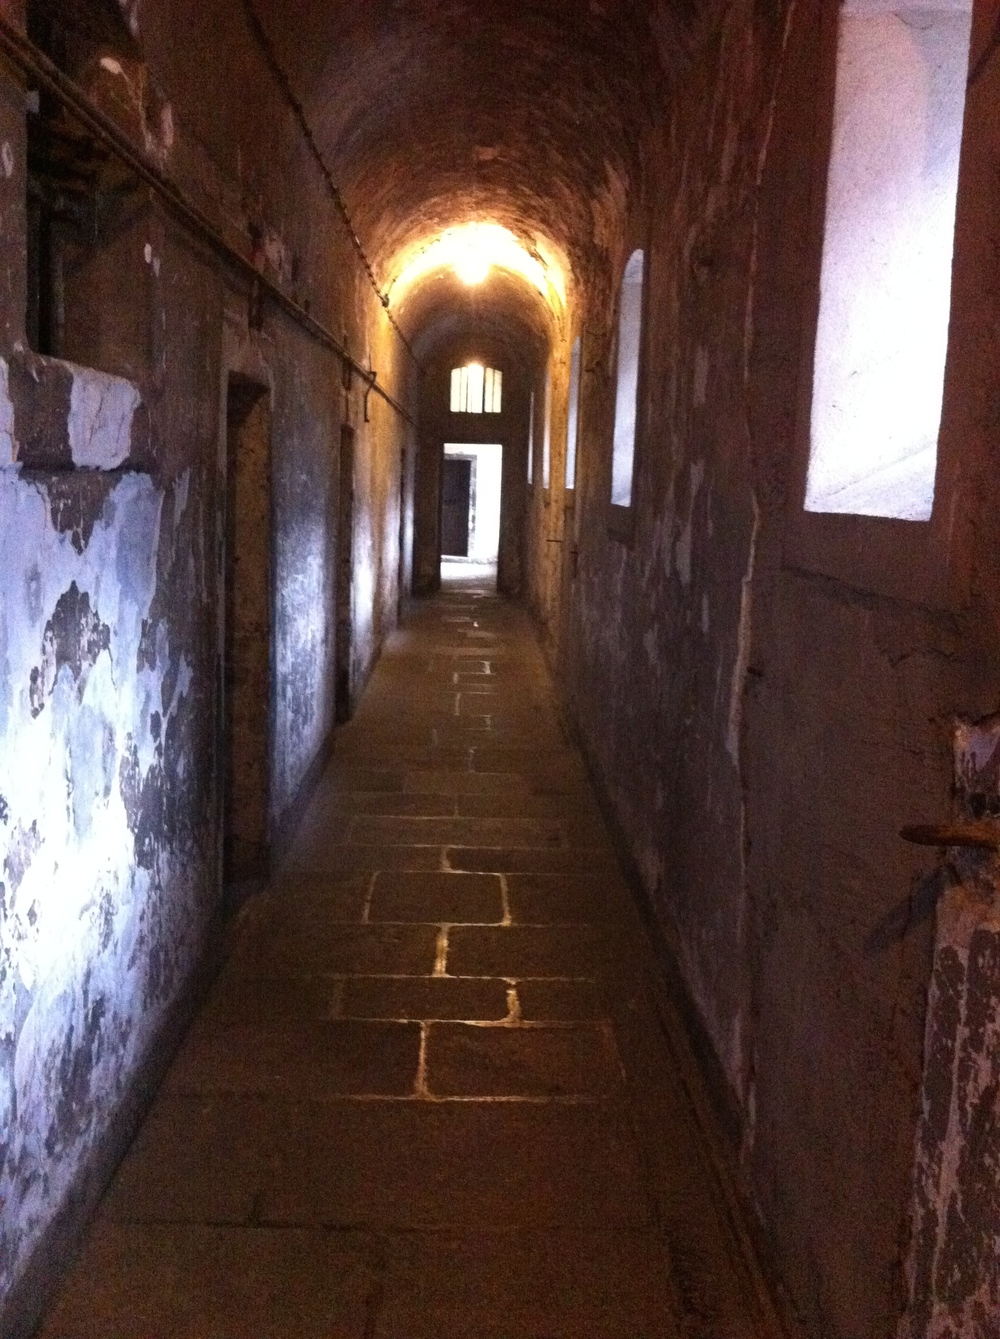 The hallways have a strange haunting glow that magnifies the decaying walls.